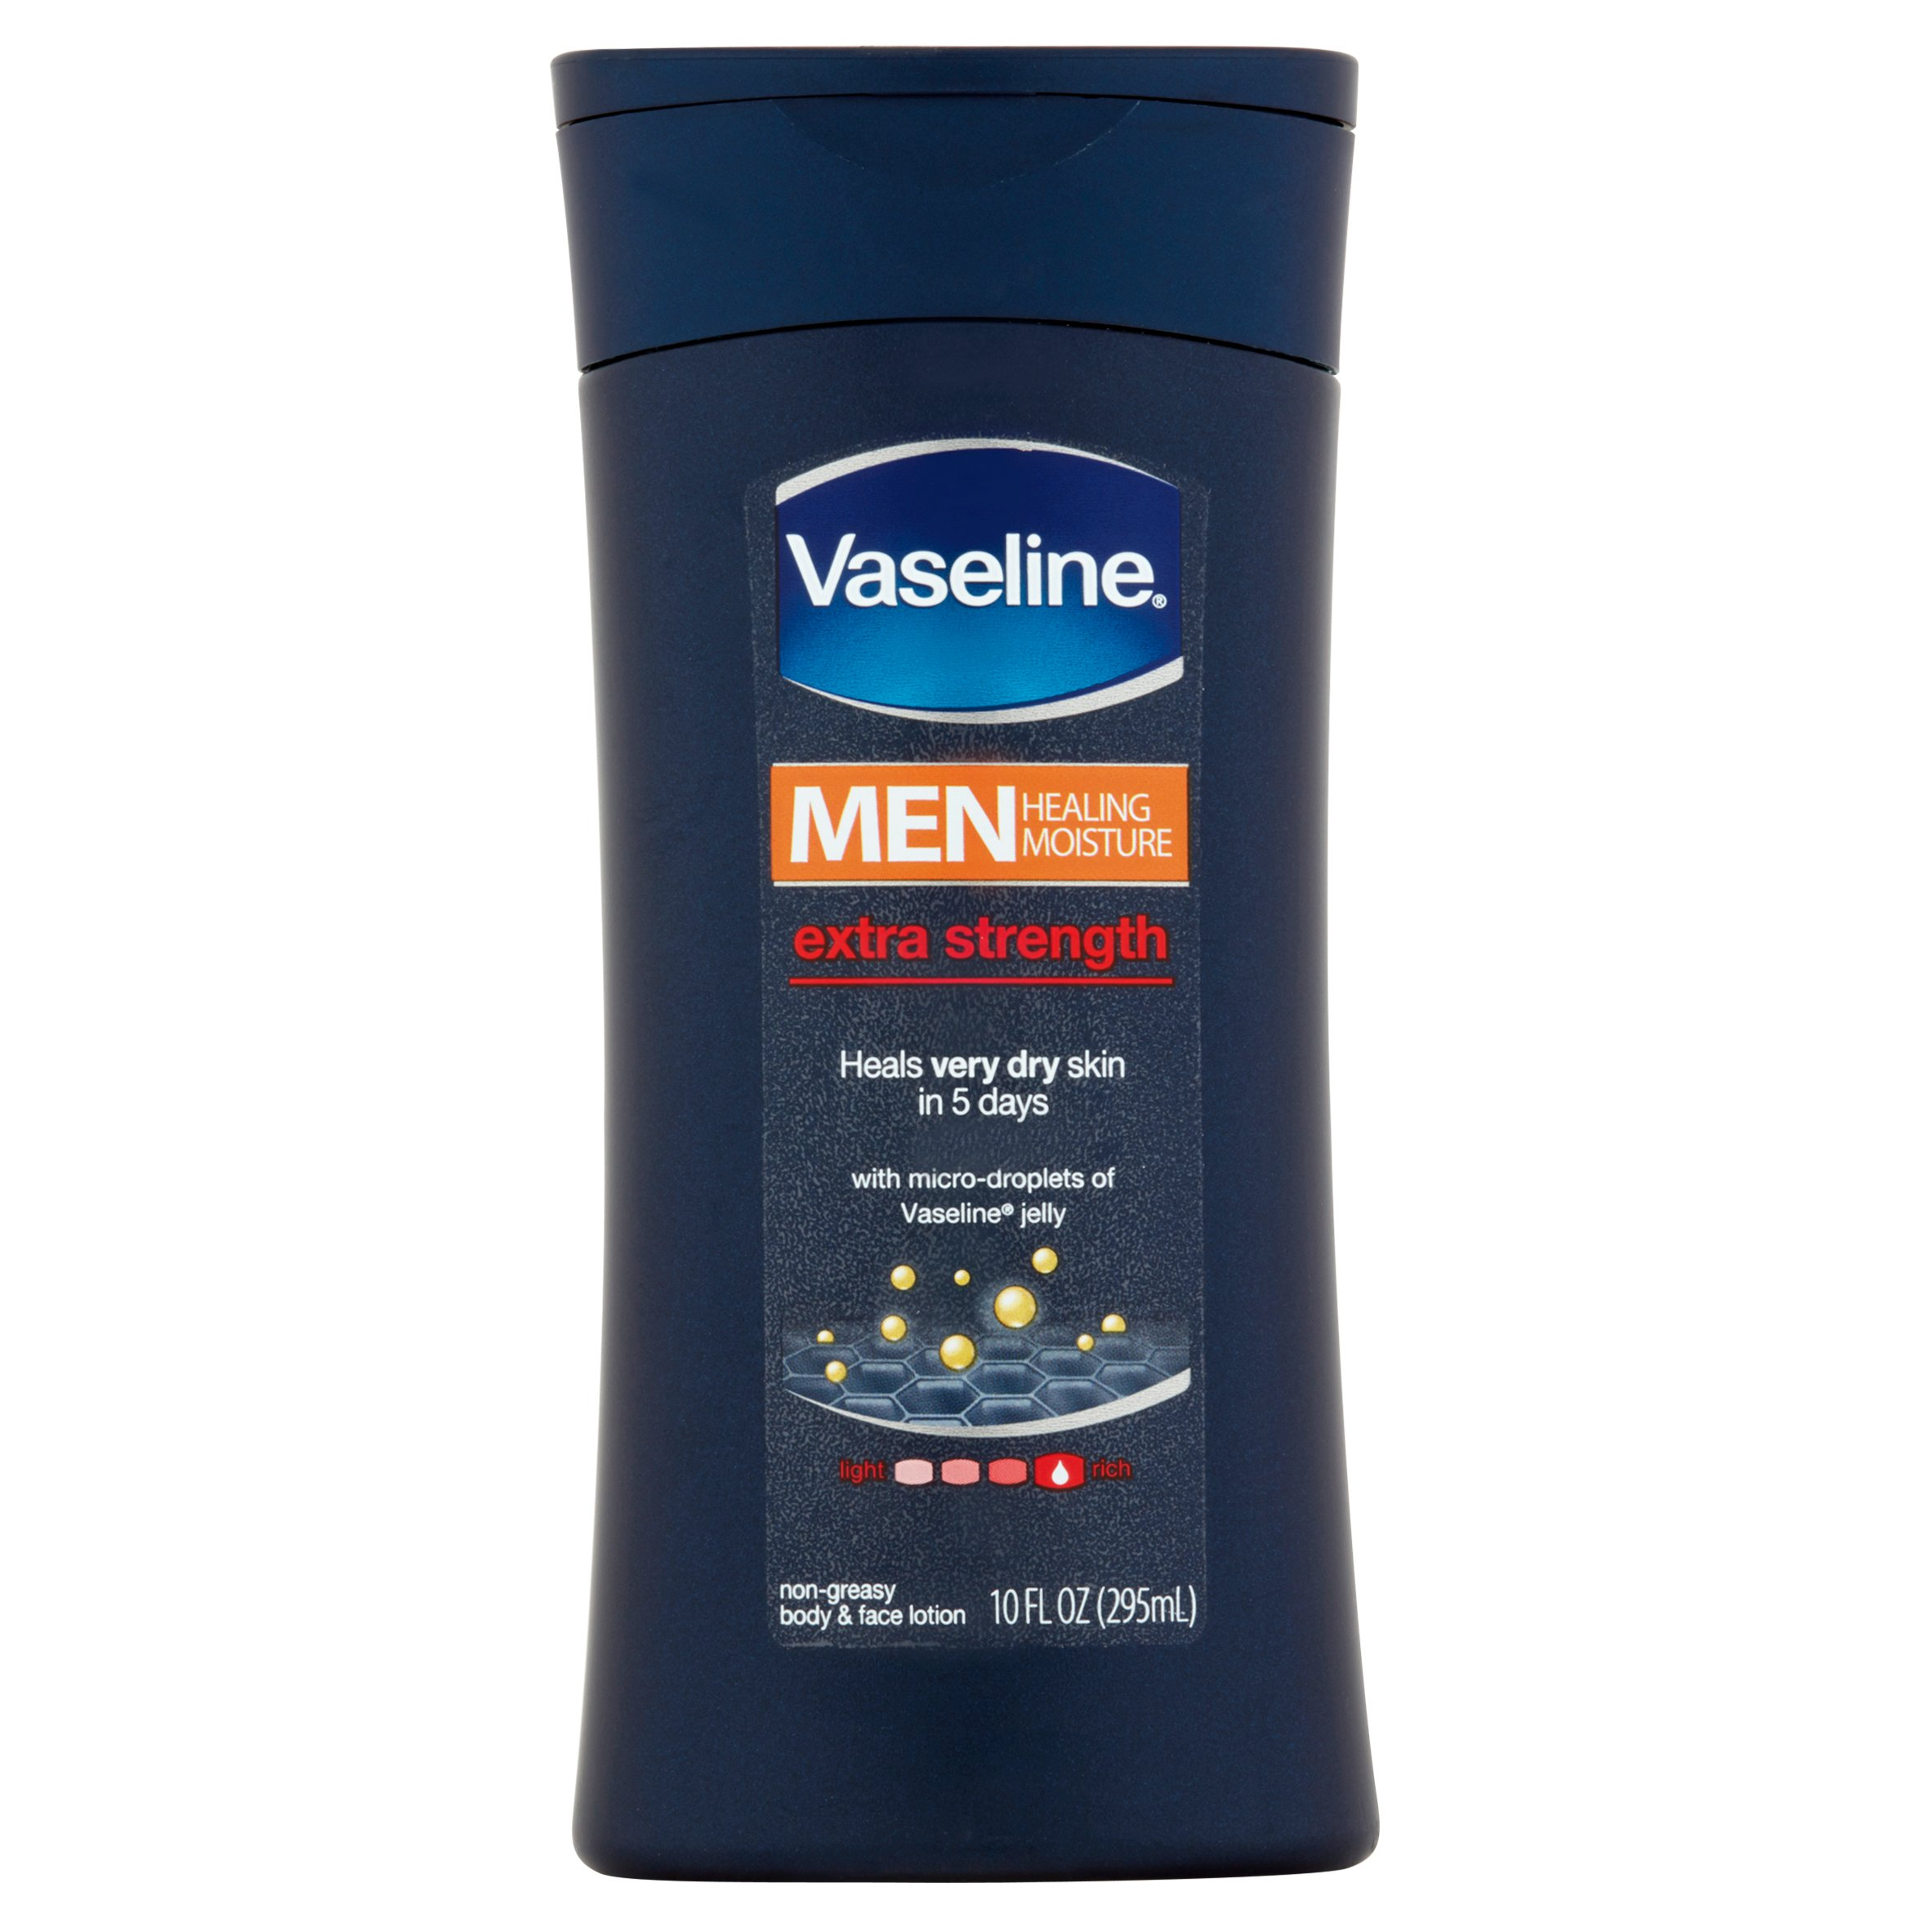 Vaseline Men Healing Moisture Extra Strength Body and Face Lotion 10 oz